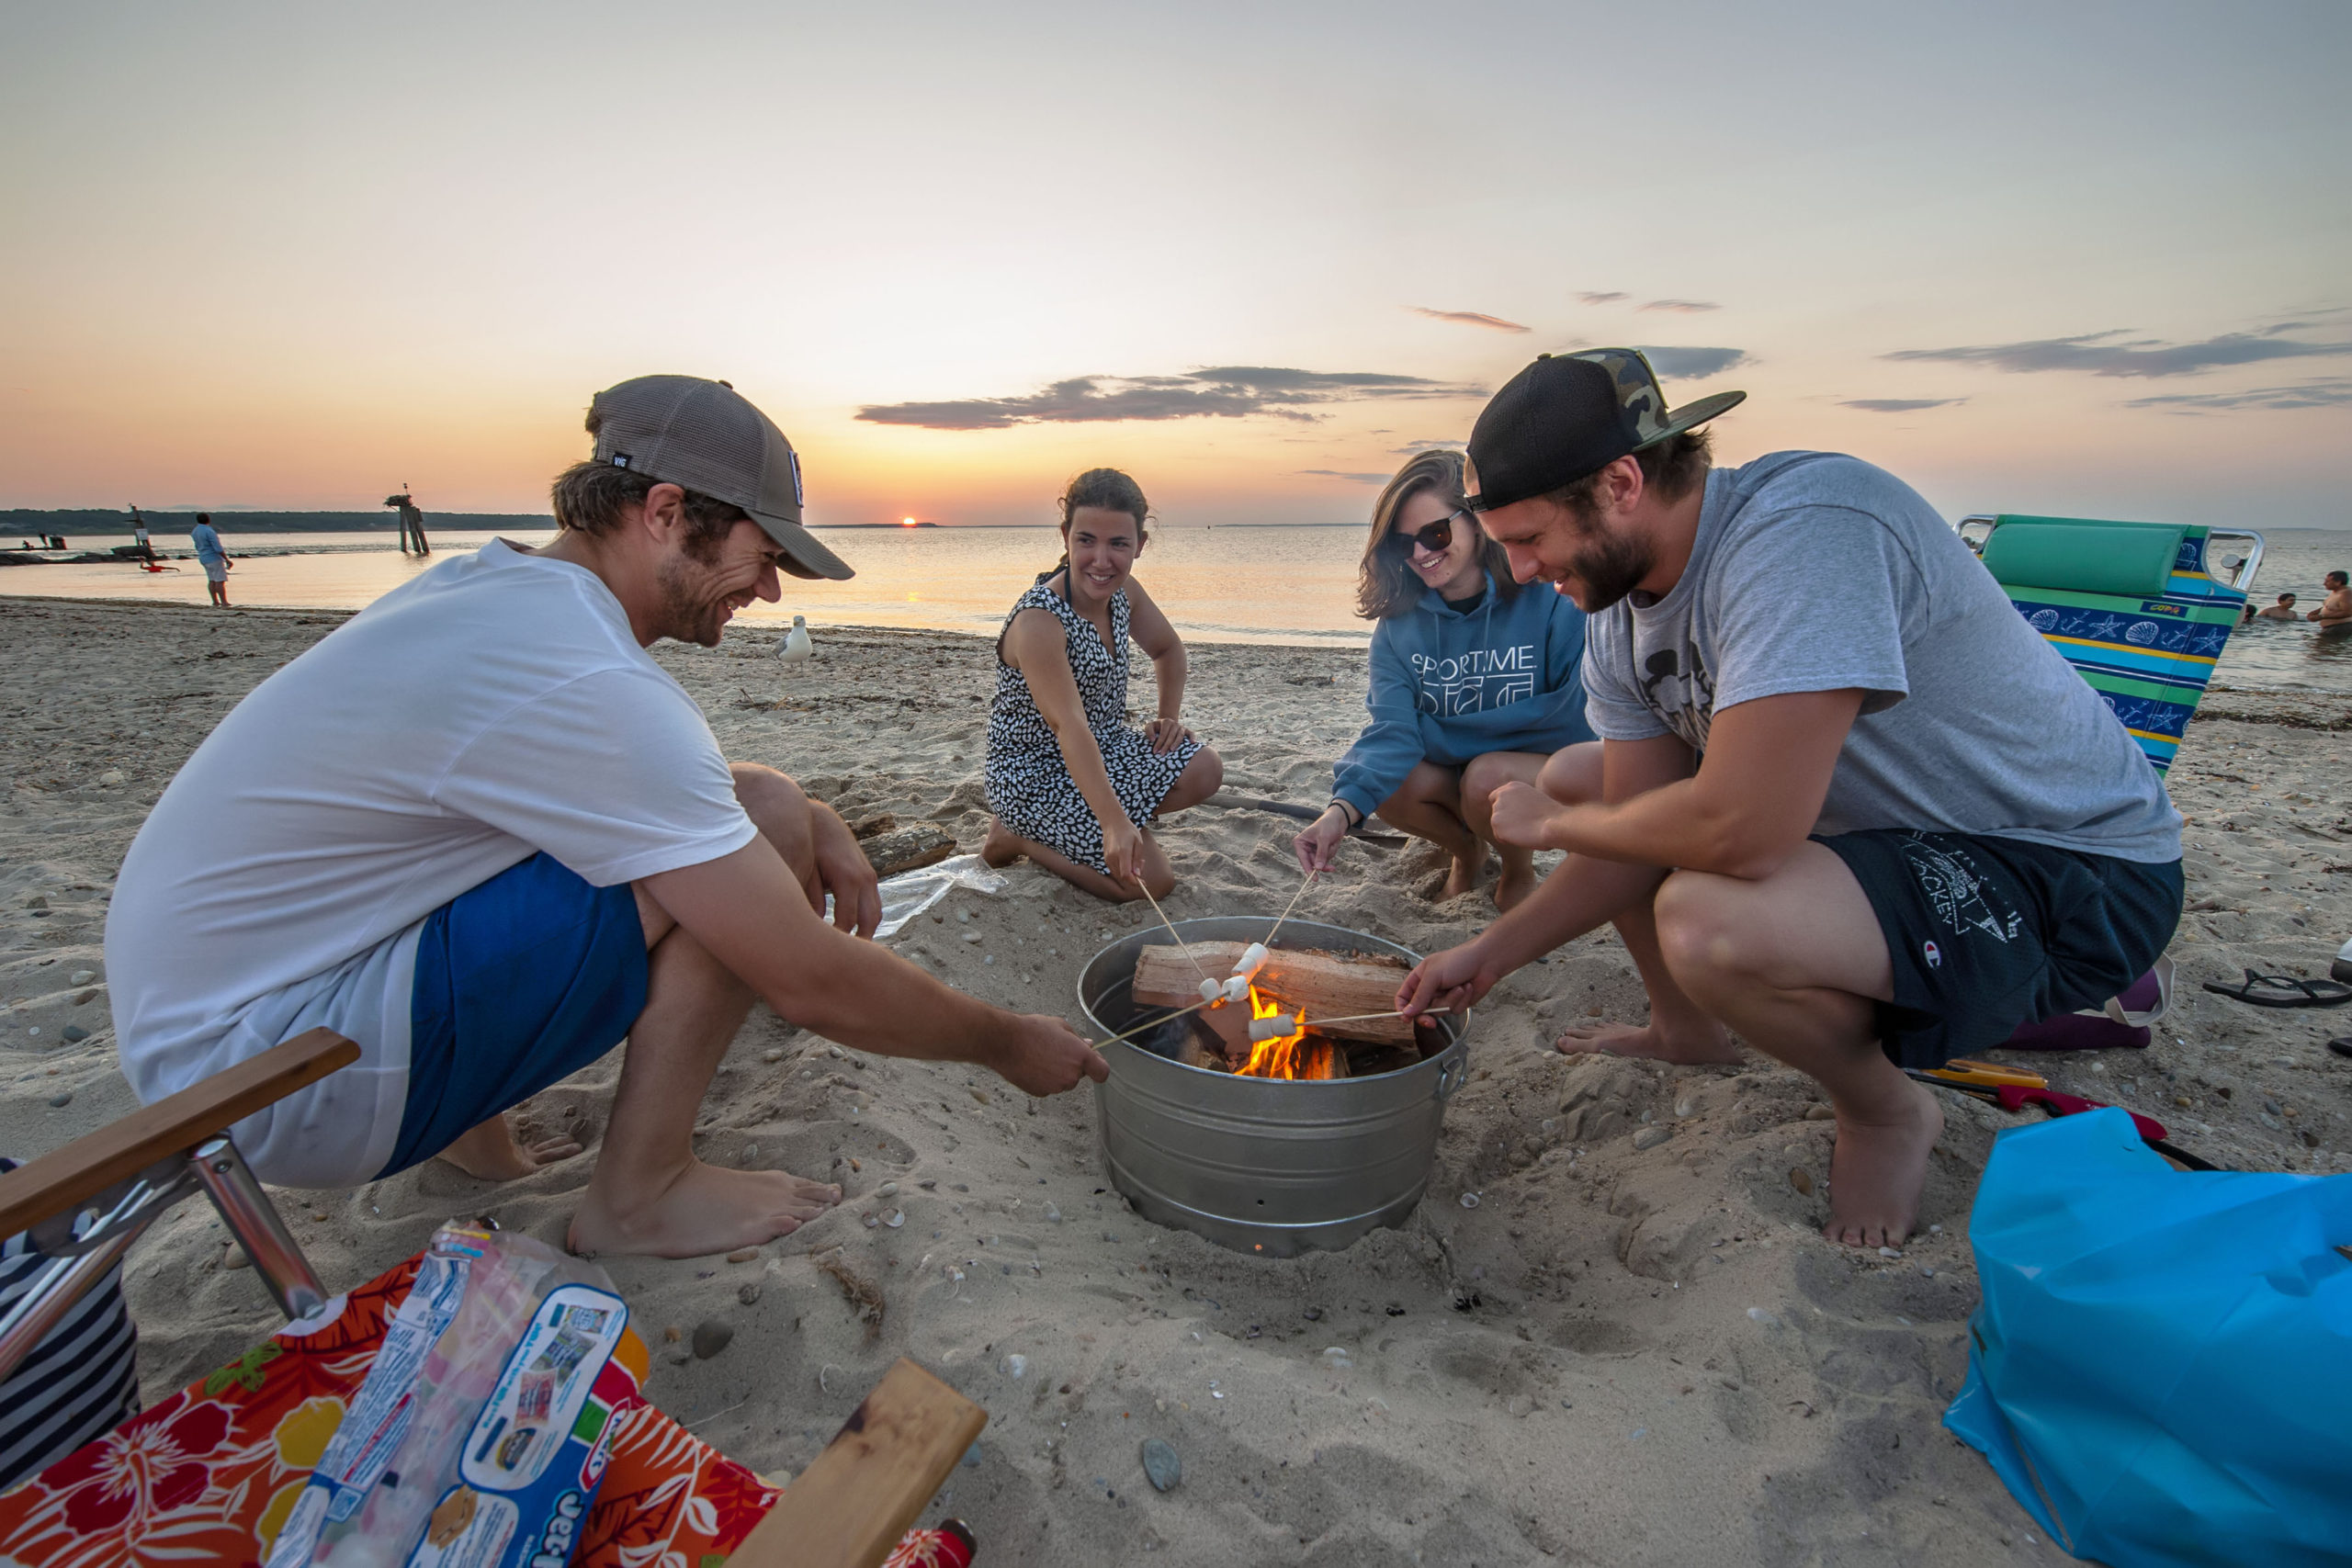 Randall Rush, Leanna DeMai, Lindsay DePointe and Tyler Jarvis roast marshmallows at their campfire as part of a July 4th celebration as the sun goes down at Maidstone Park Beach on Saturday evening.  MICHAEL HELLER